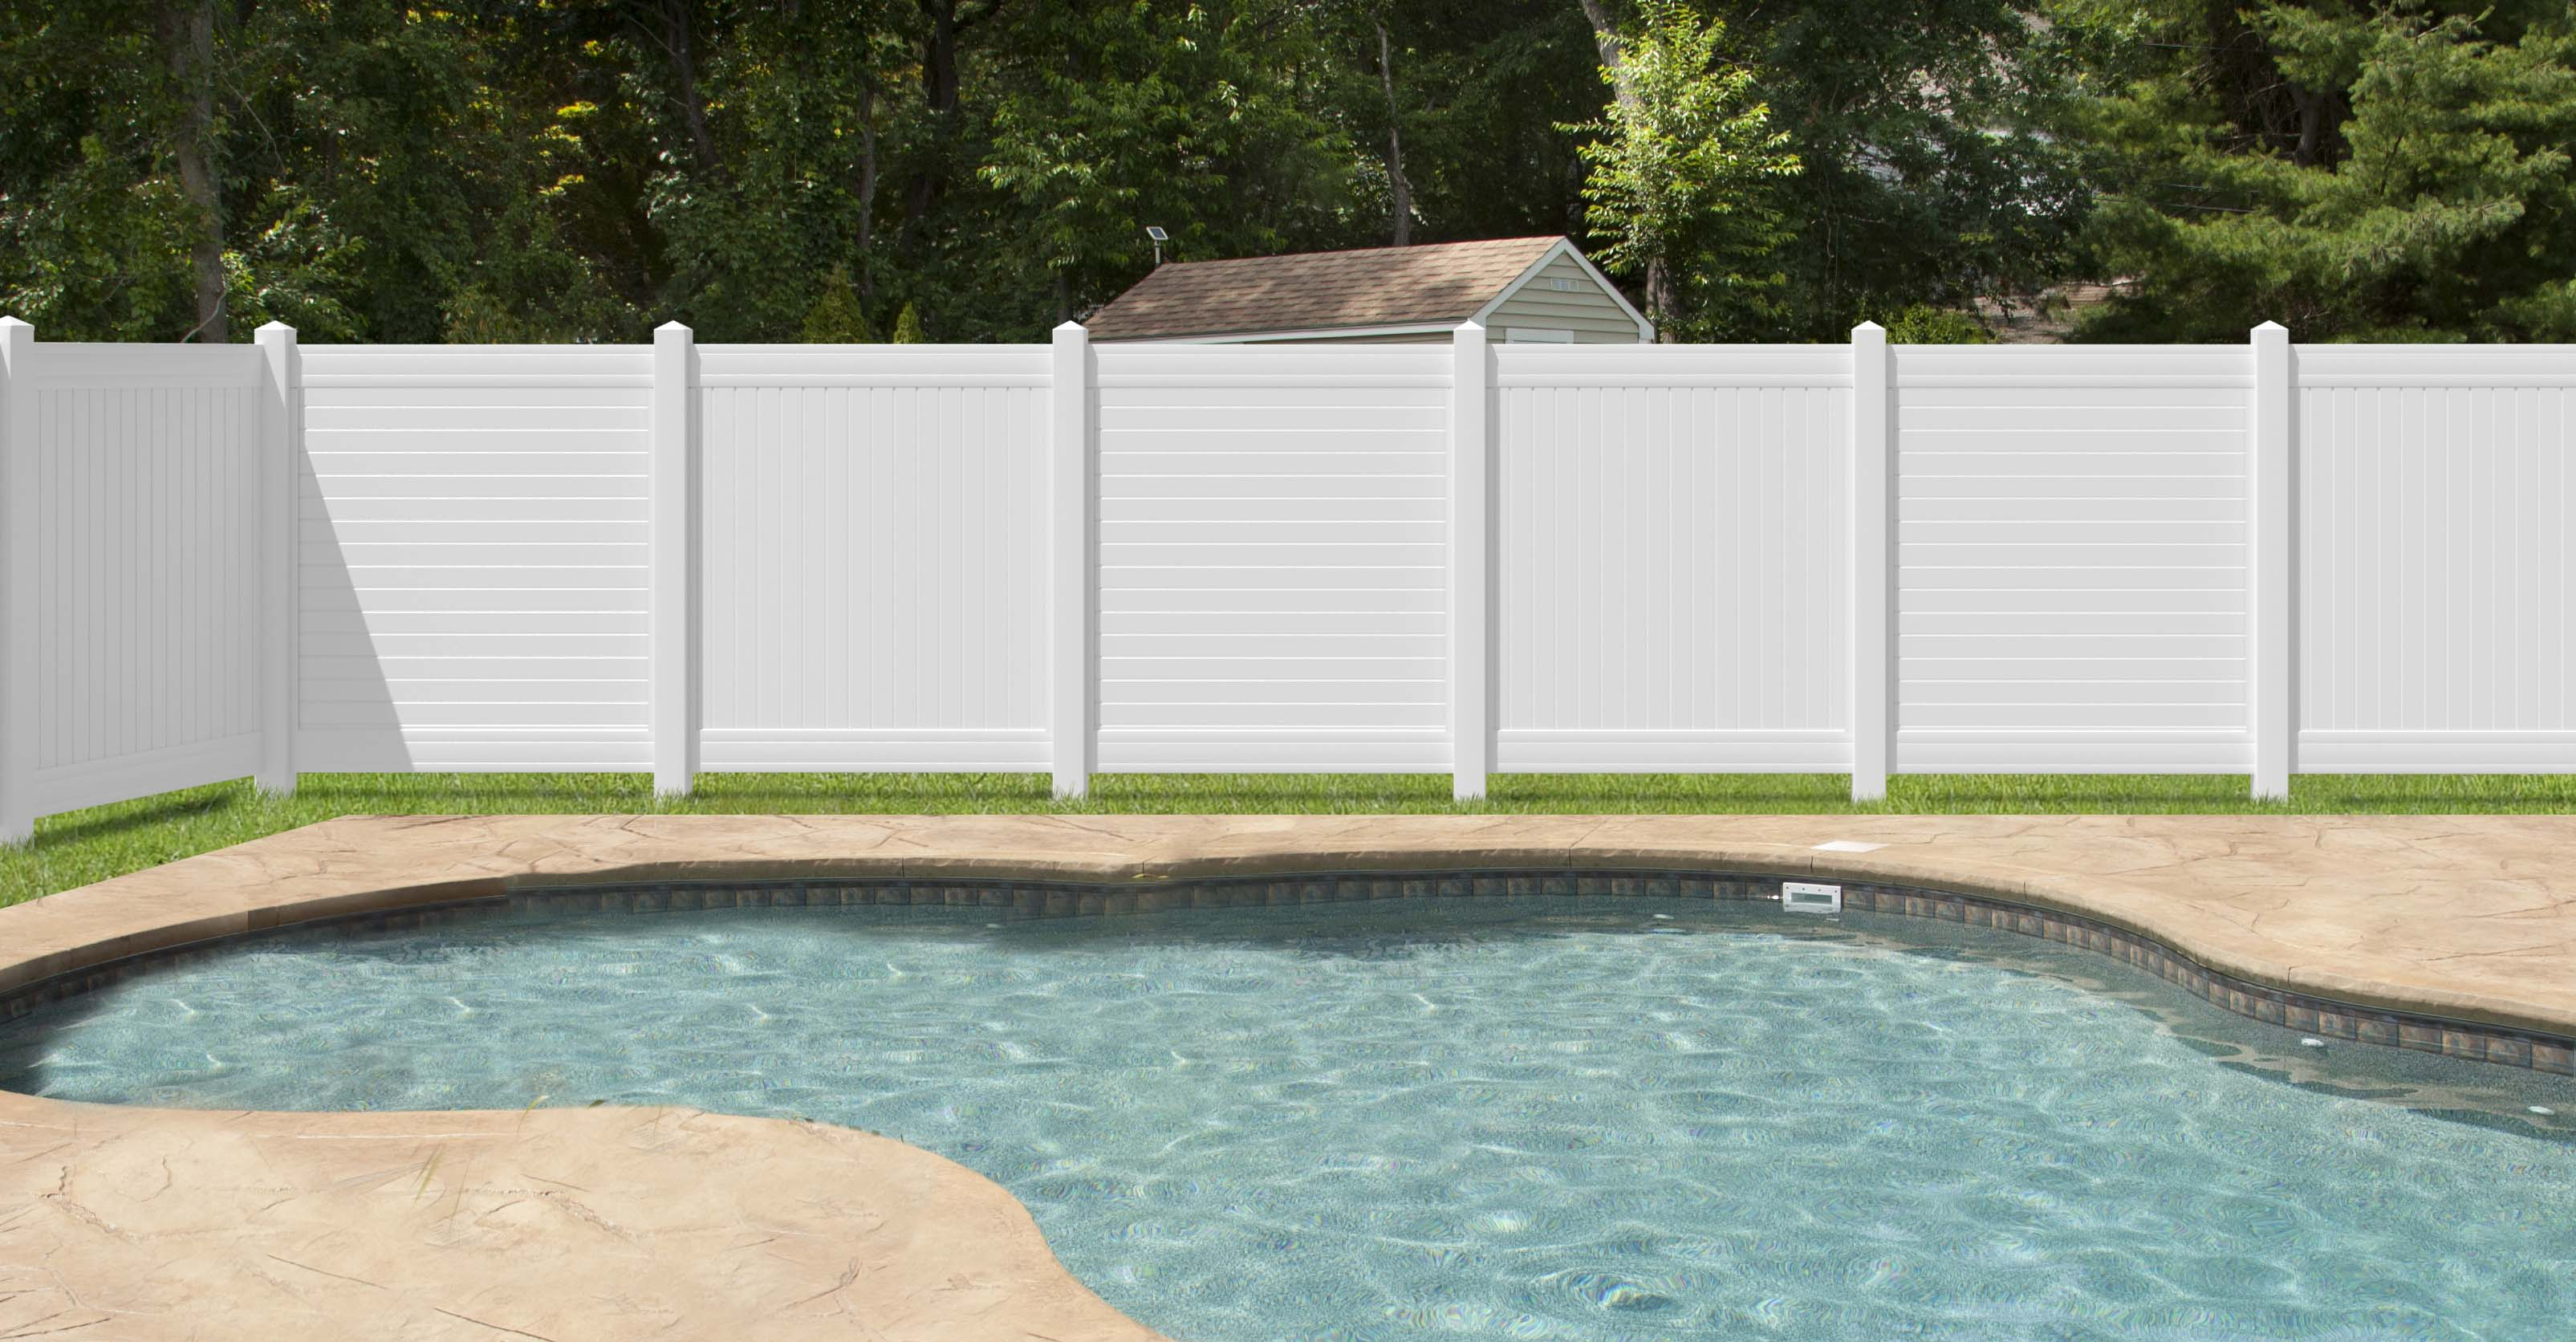 54 How Much Cost Fence Backyard Home Decor with 16 Smart Tricks of How to Craft Fence Backyard Cost